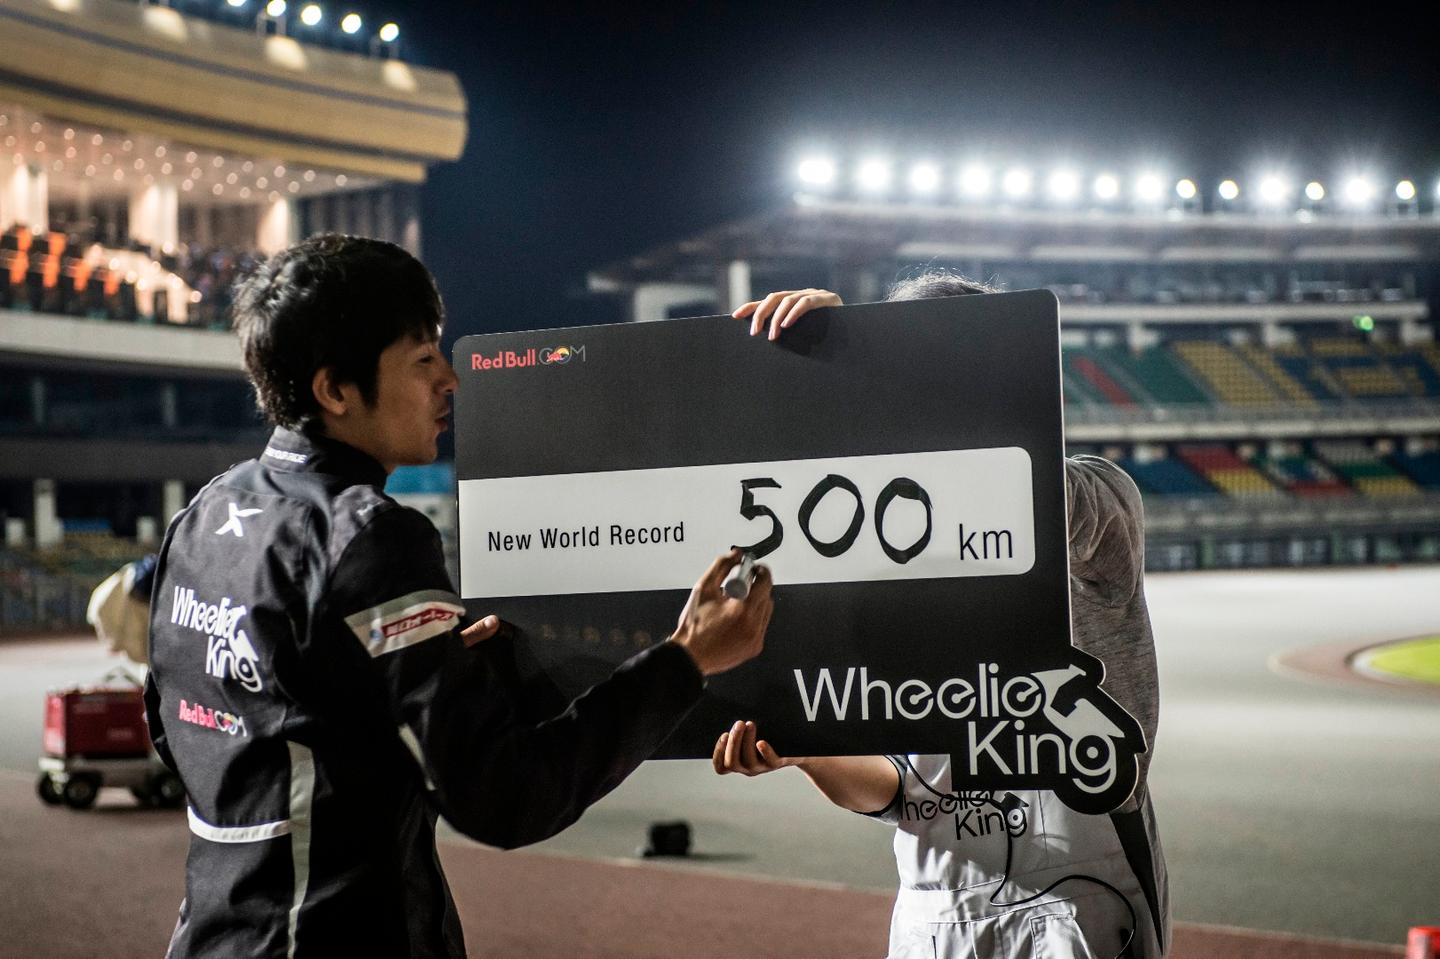 Japan's Masaru Abe is the new Wheelie King after a monster 500km minger